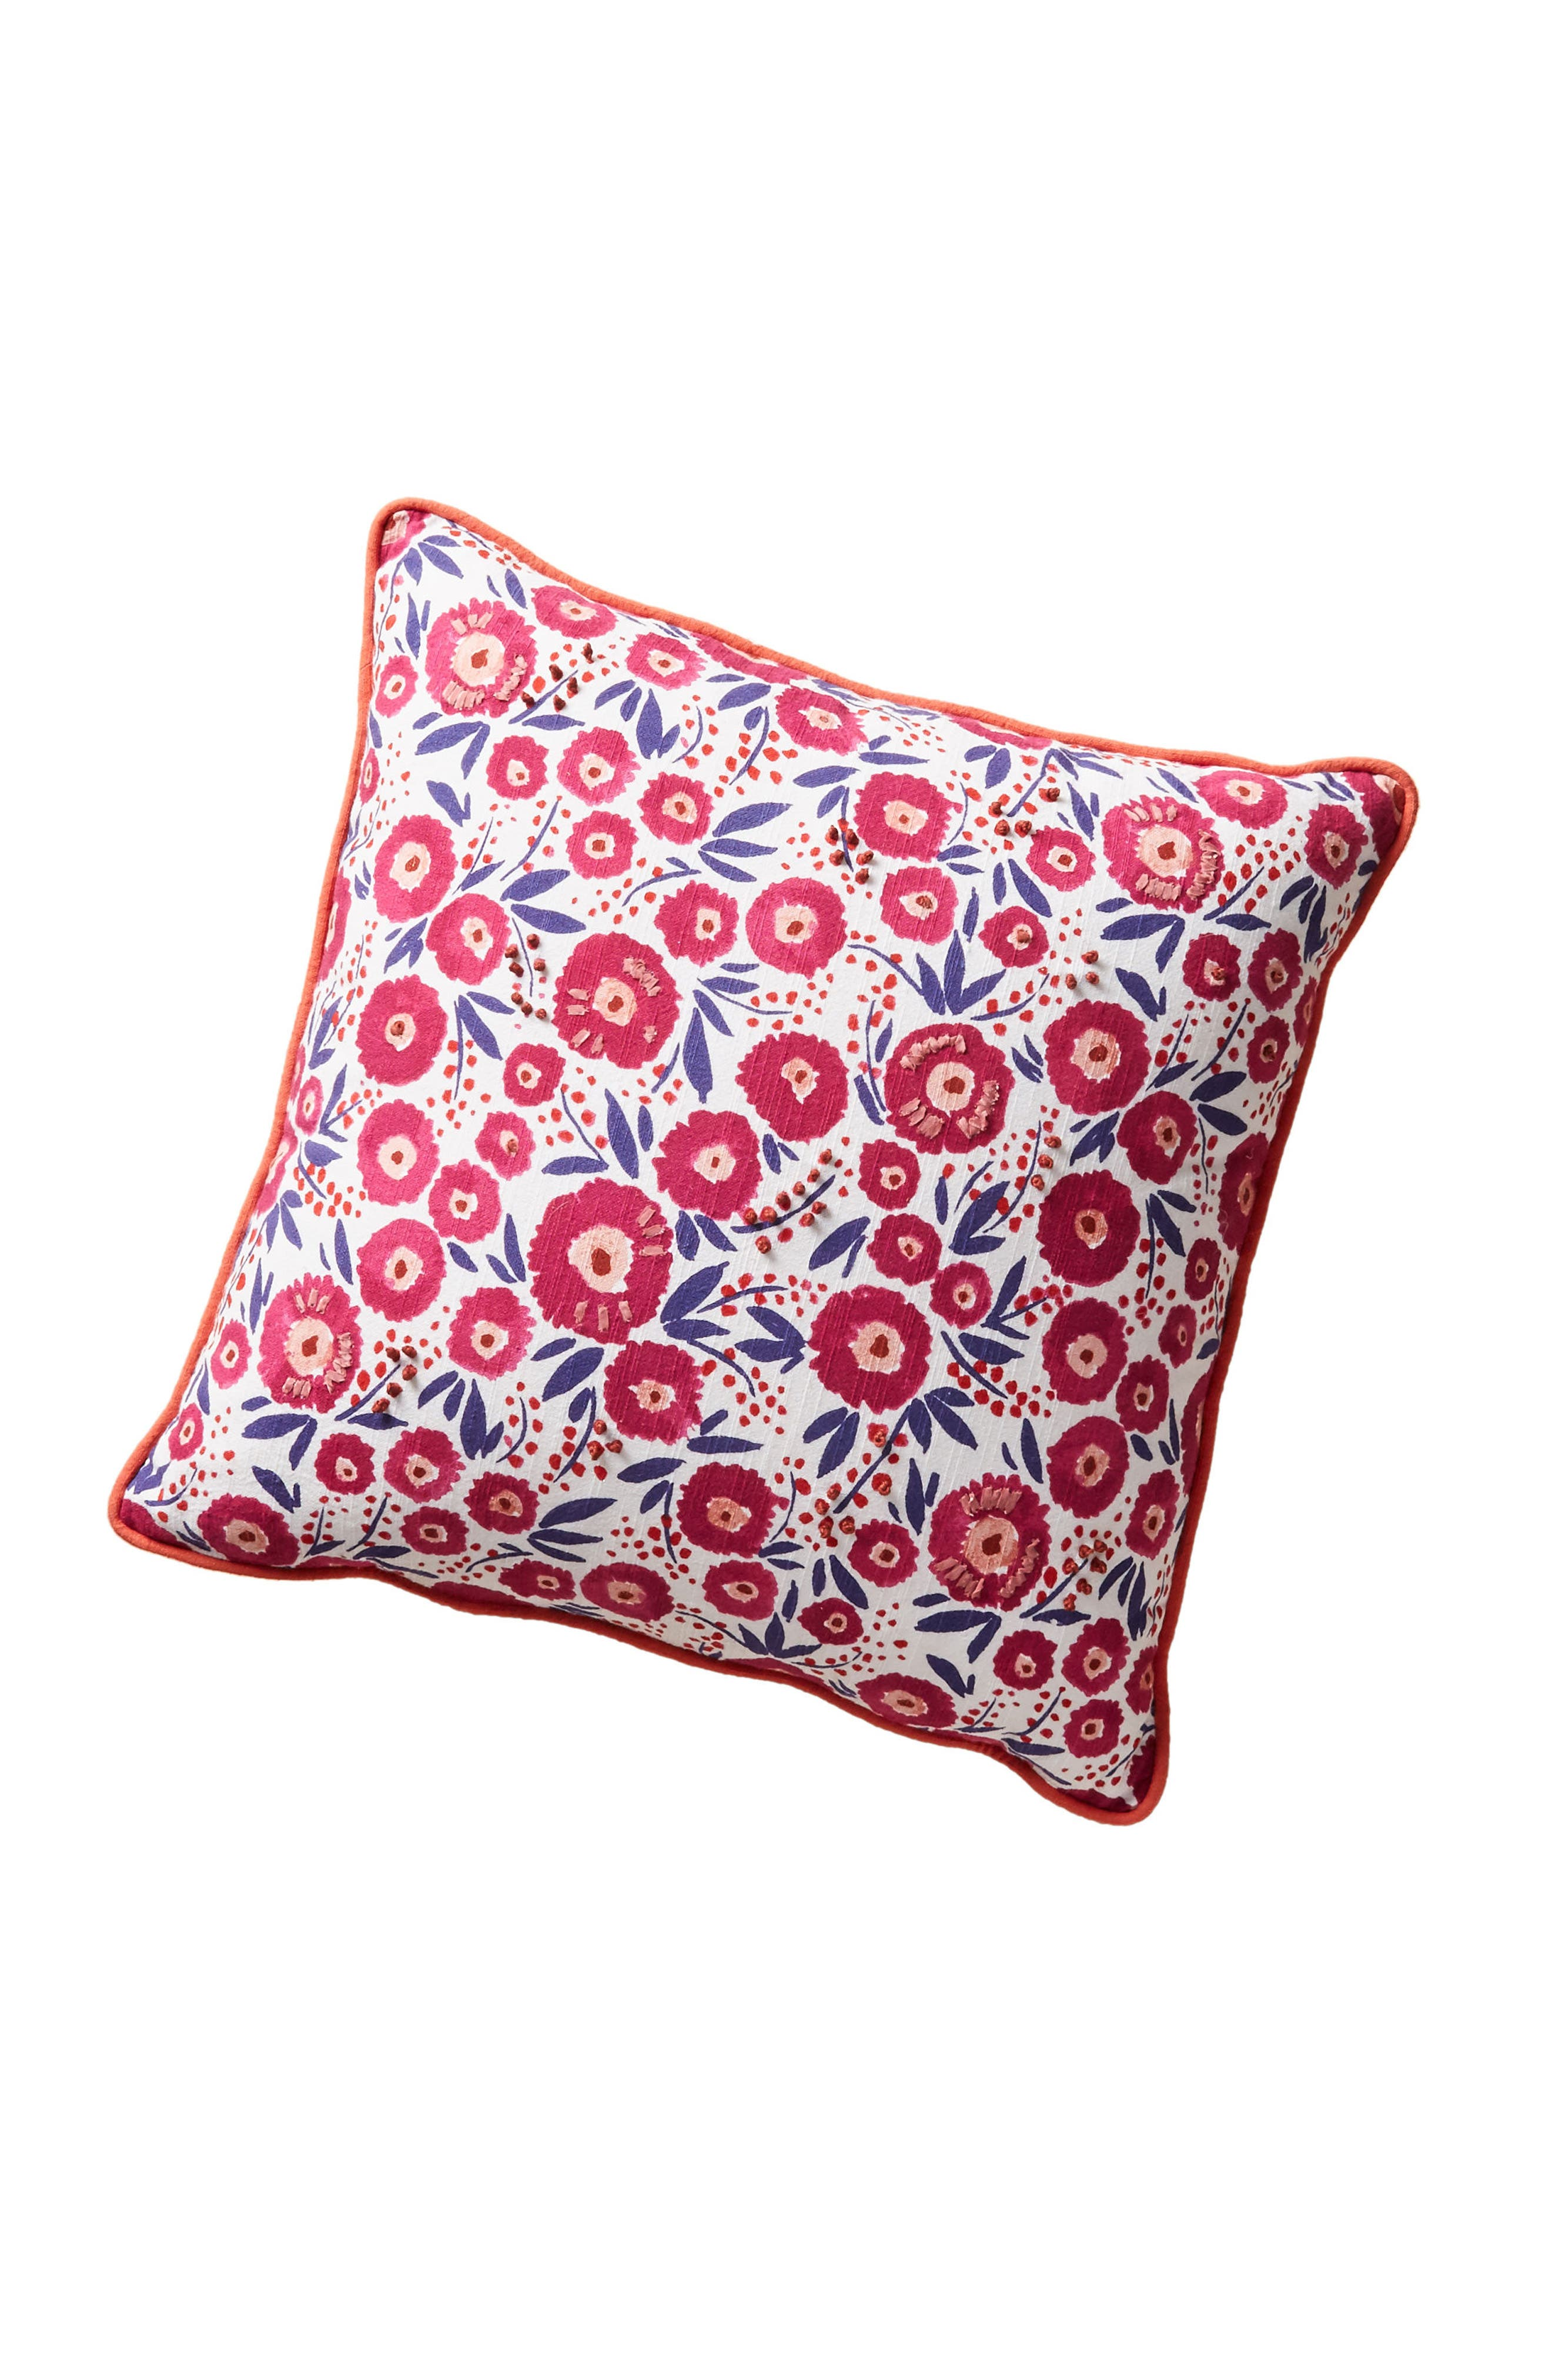 Painted Poppies Accent Pillow,                             Alternate thumbnail 4, color,                             650